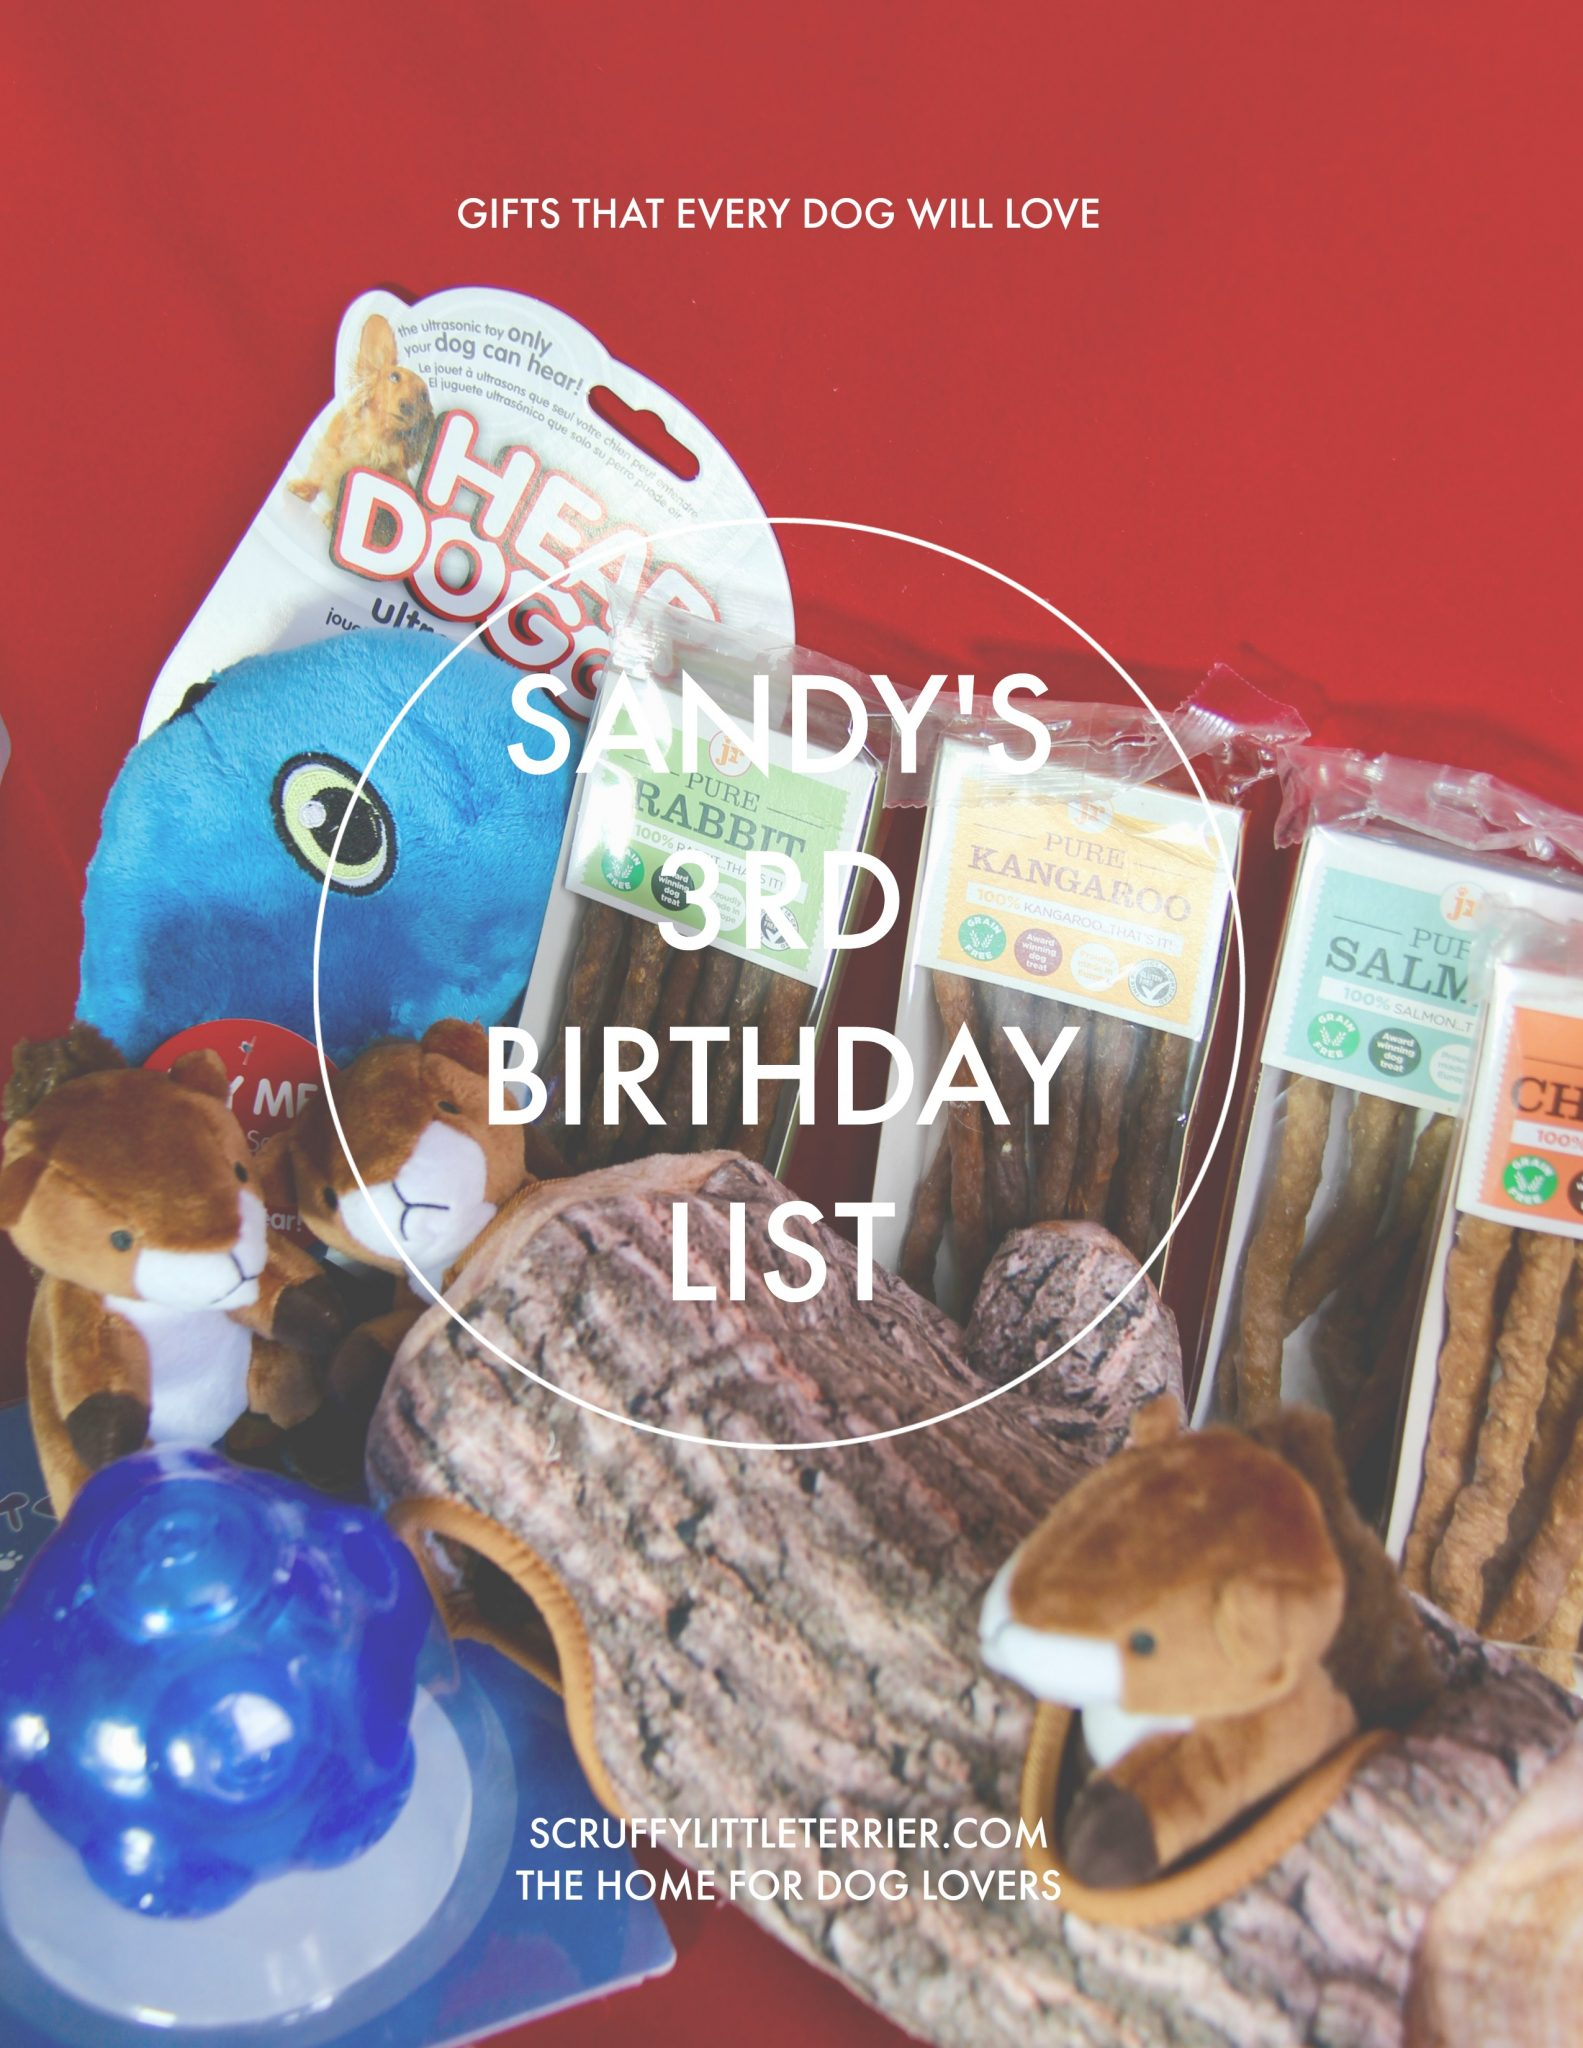 3 Sandy's 3rd Birthday List {Sandy's 3rd Birthday List} #DogBirthday #DogProductReviews #DogProducts #DogBall #DogChews #DogToys www.scruffylittleterrier.com